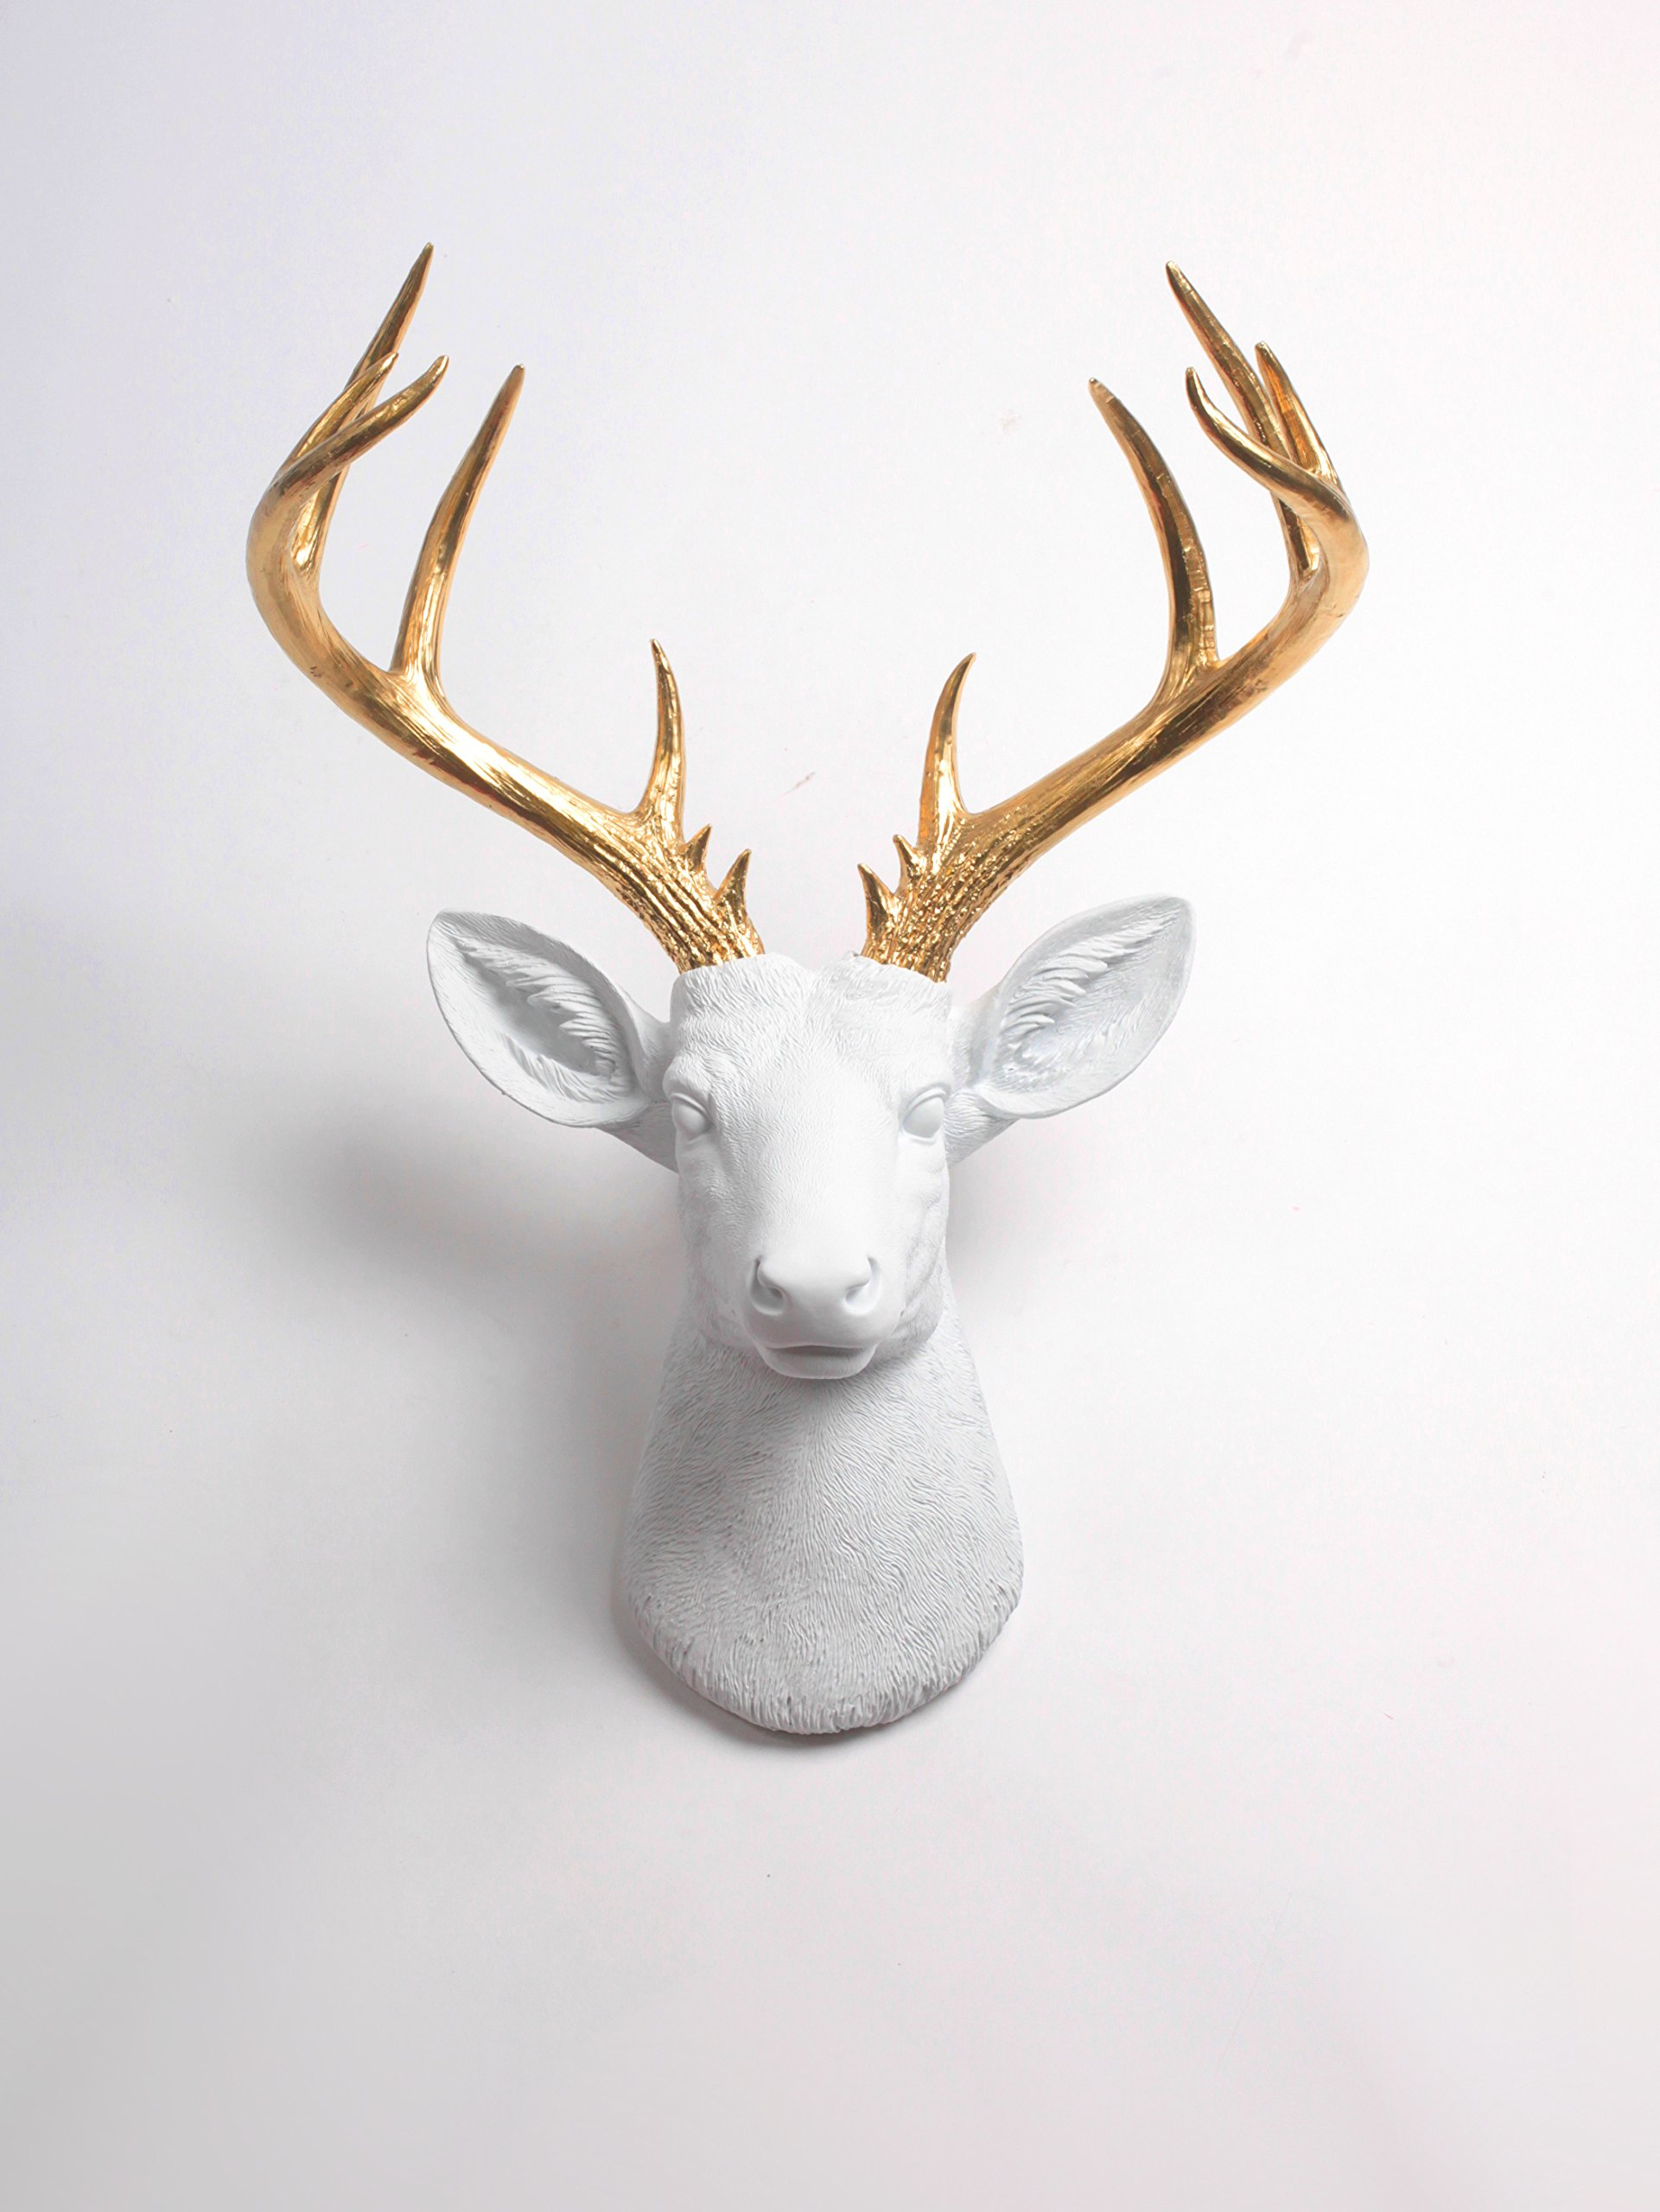 XL Deer Head Wall Hanging, The XL Alfred White and Gold Stag Decor by White faux Taxidermy Animal Heads